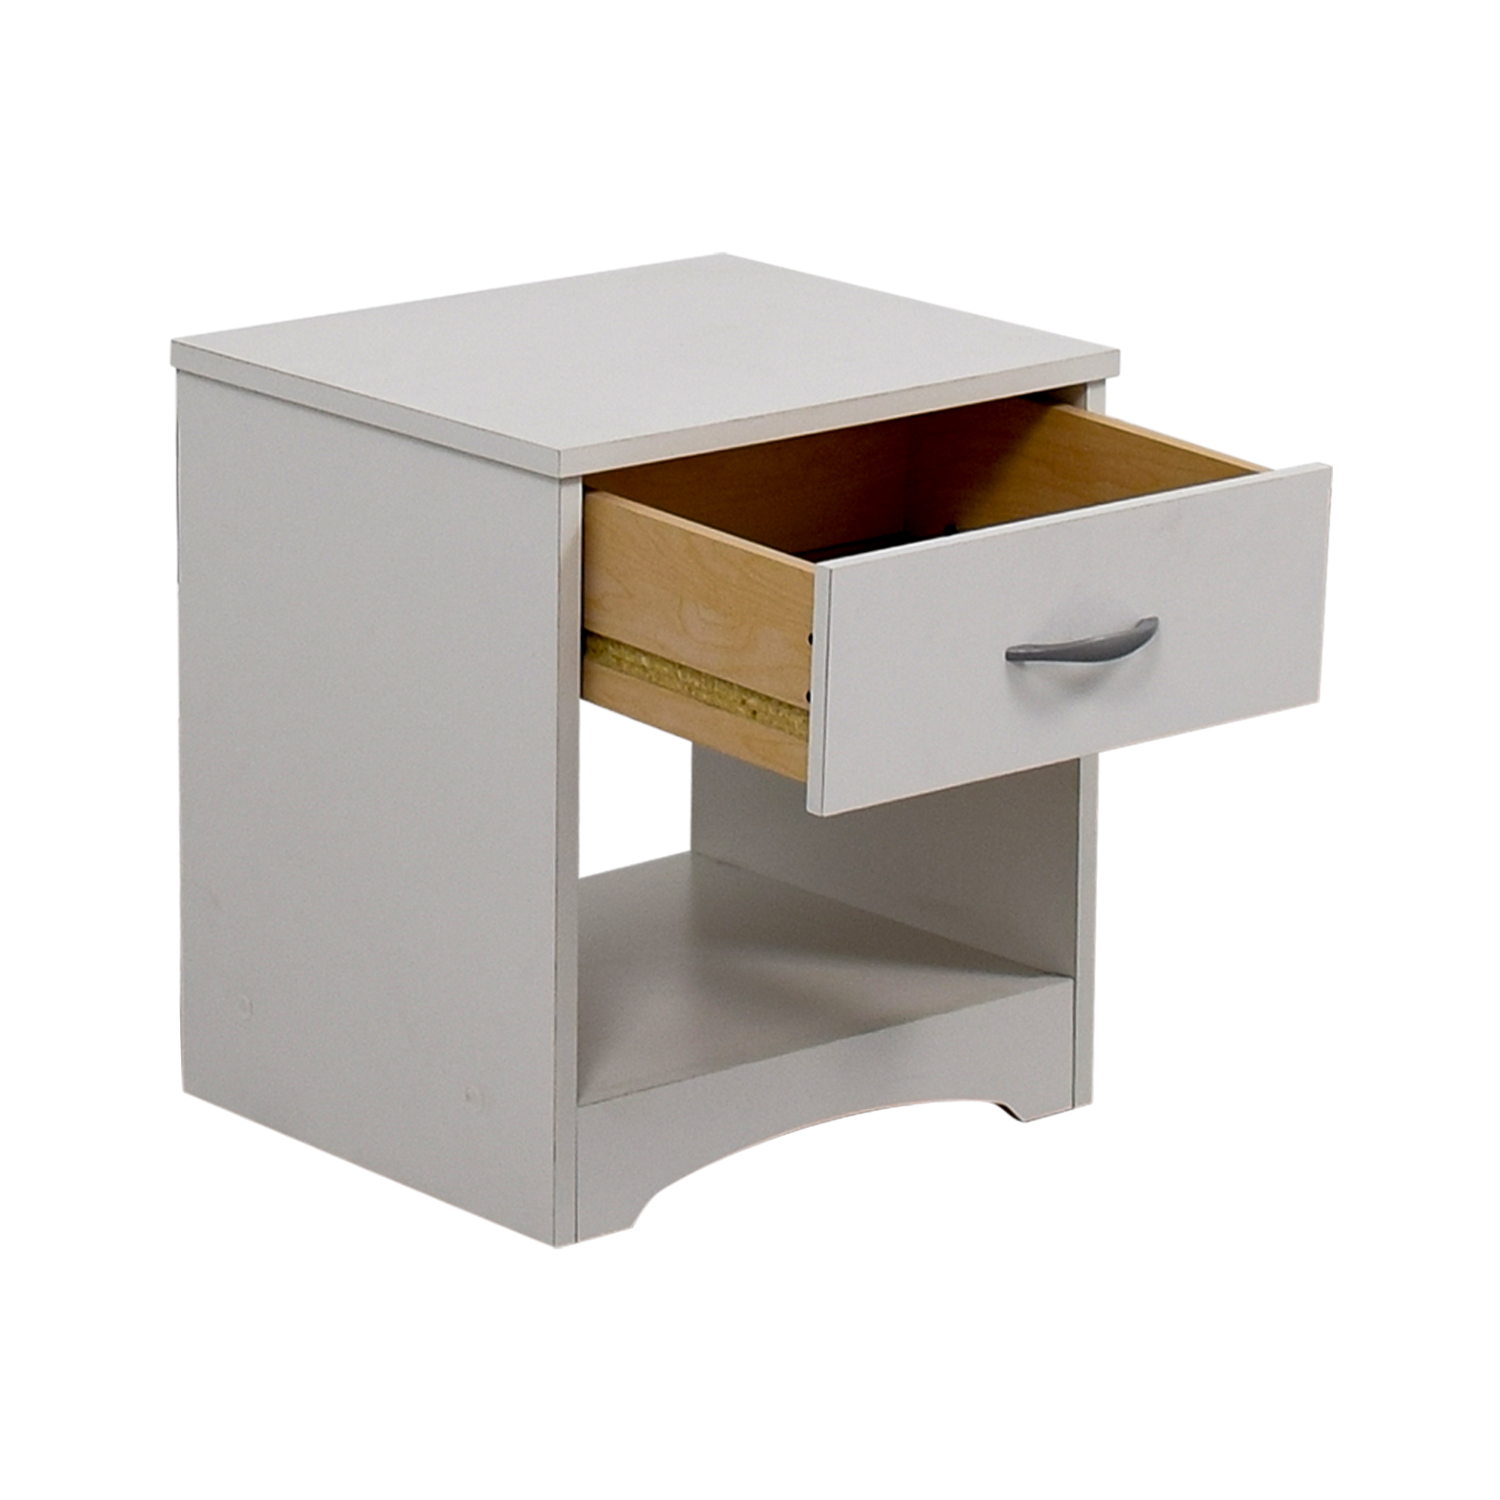 Incredible 55 Off Wayfair Wayfair Small White Nightstand Tables Bralicious Painted Fabric Chair Ideas Braliciousco